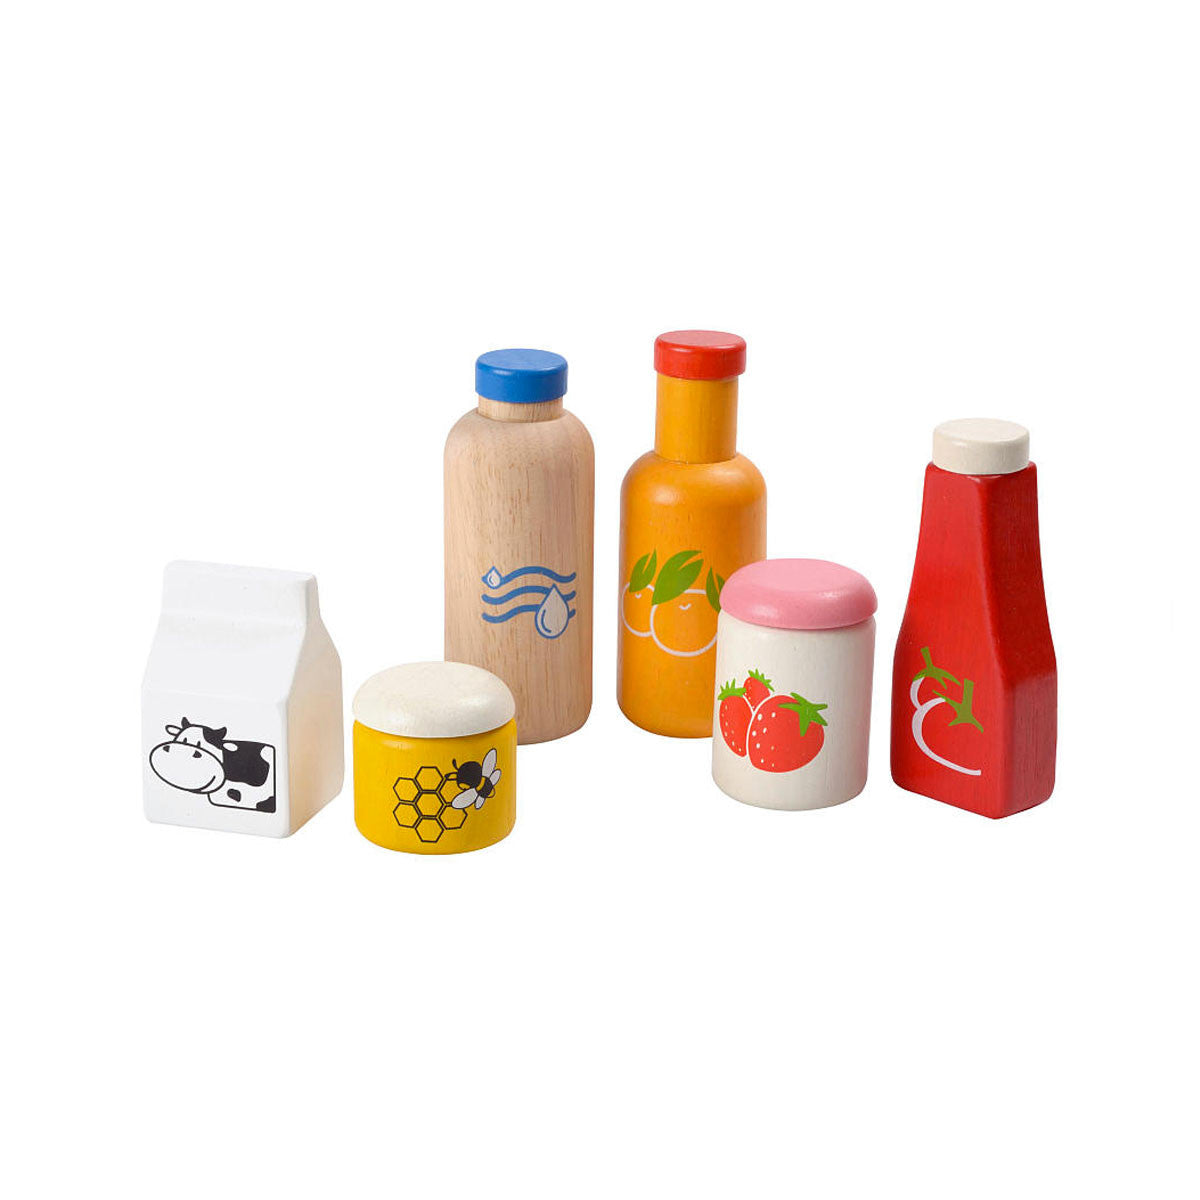 Plan Toys Food and Beverage Set PlanToys Toy Kitchens & Play Food at Little Earth Nest Eco Shop